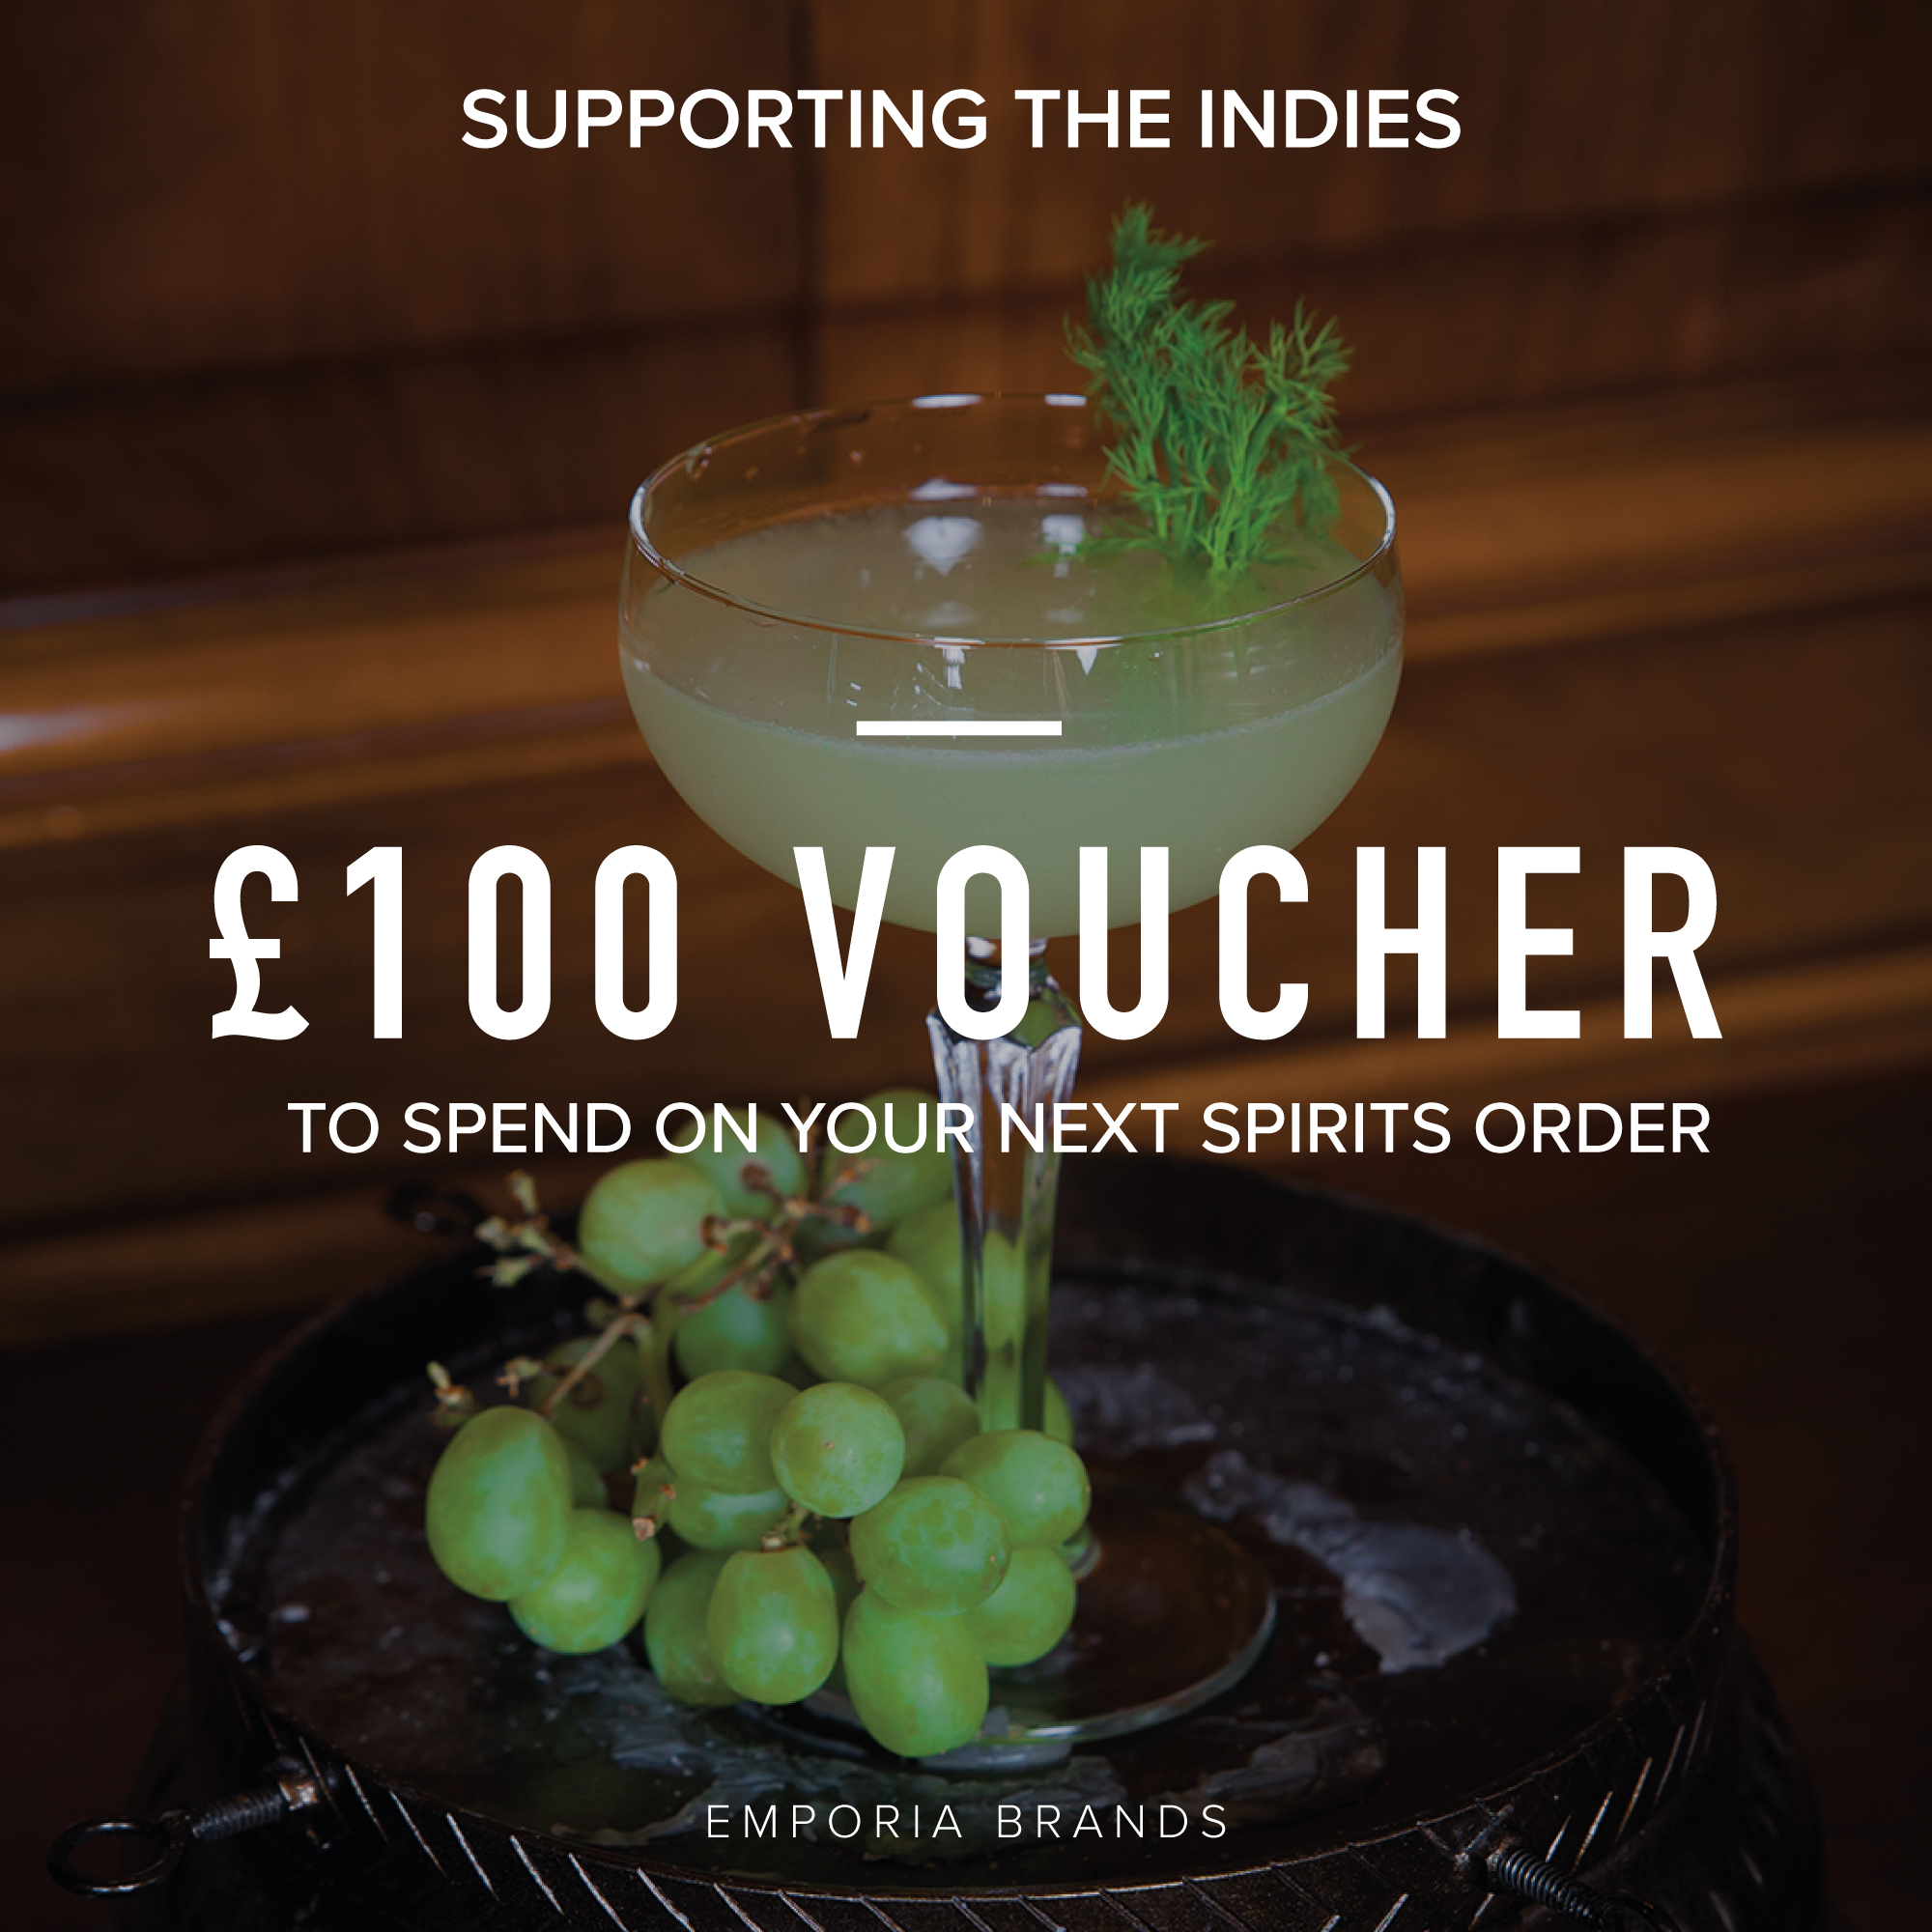 Emporia Brands £100 voucher for indies